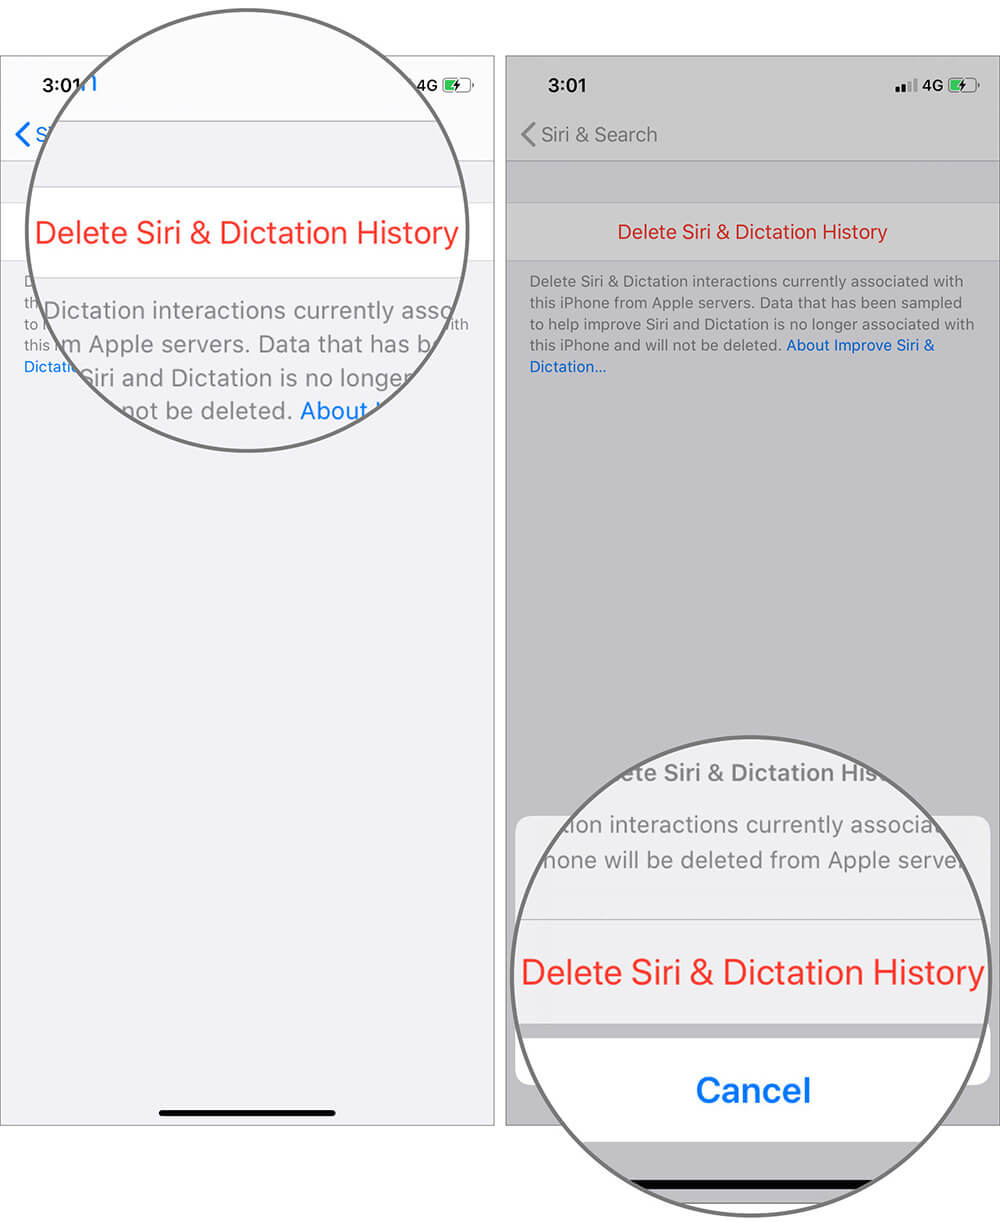 Confirm Request by Tapping on Delete Siri and Dictation History in iOS 13 Device